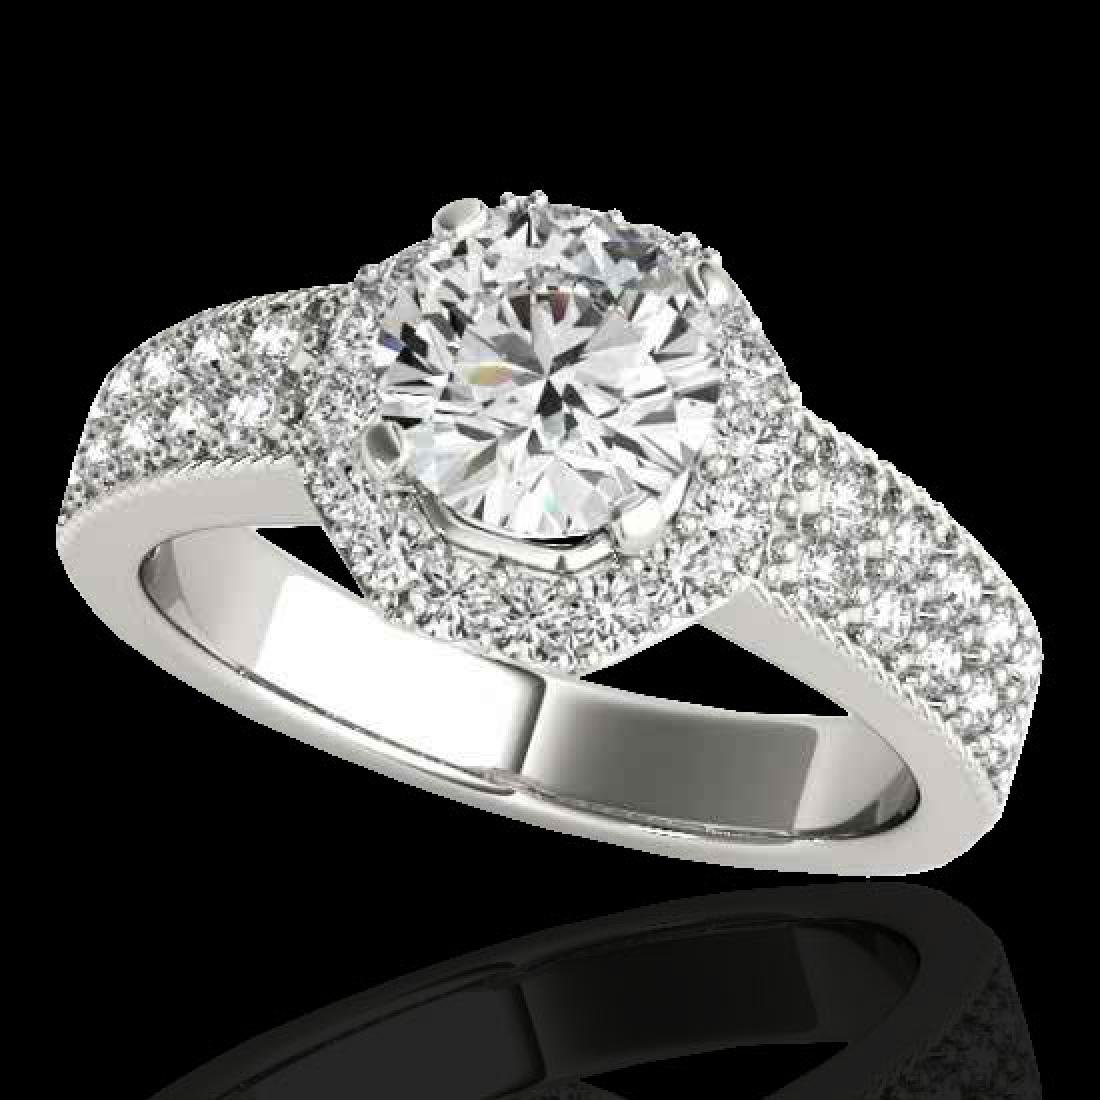 1.4 CTW H-SI/I Certified Diamond Solitaire Halo Ring